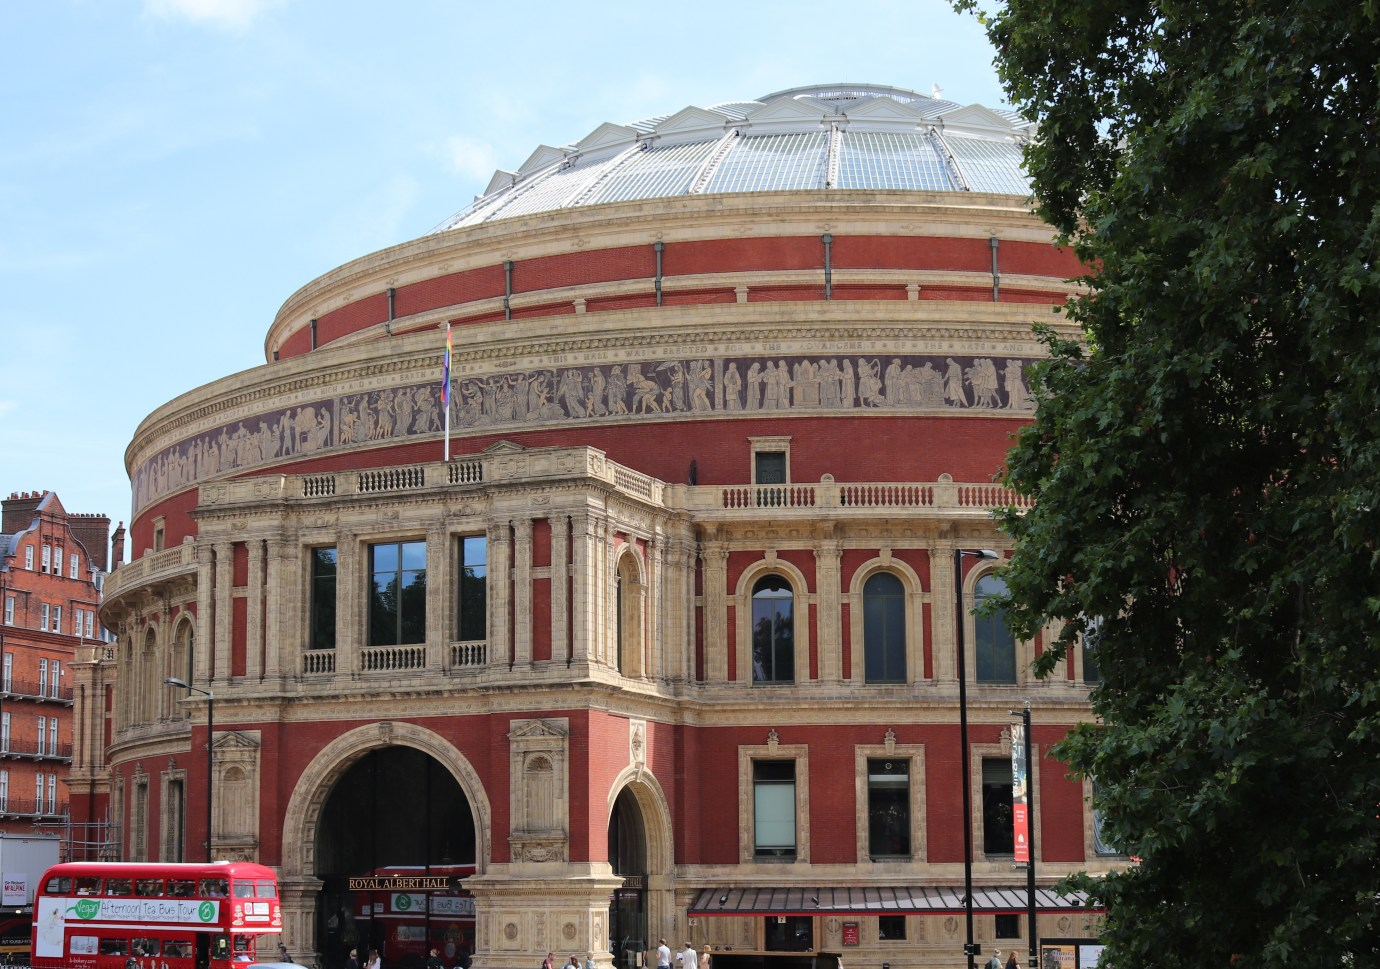 The Royal Albert Hall from Kensington Gardens